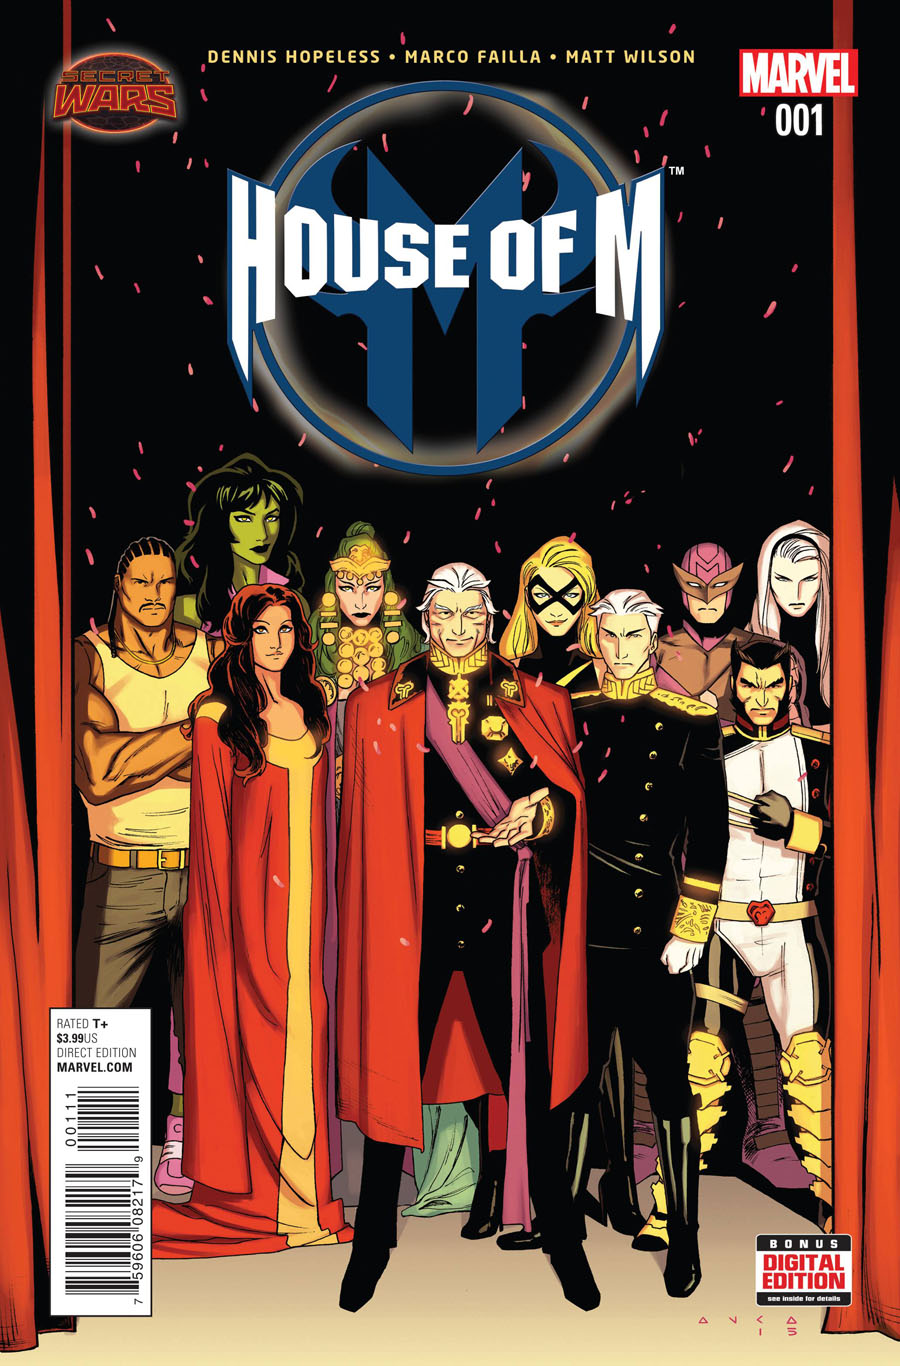 House Of M Vol 2 #1 Cover A Regular Kris Anka Cover (Secret Wars Warzones Tie-In)